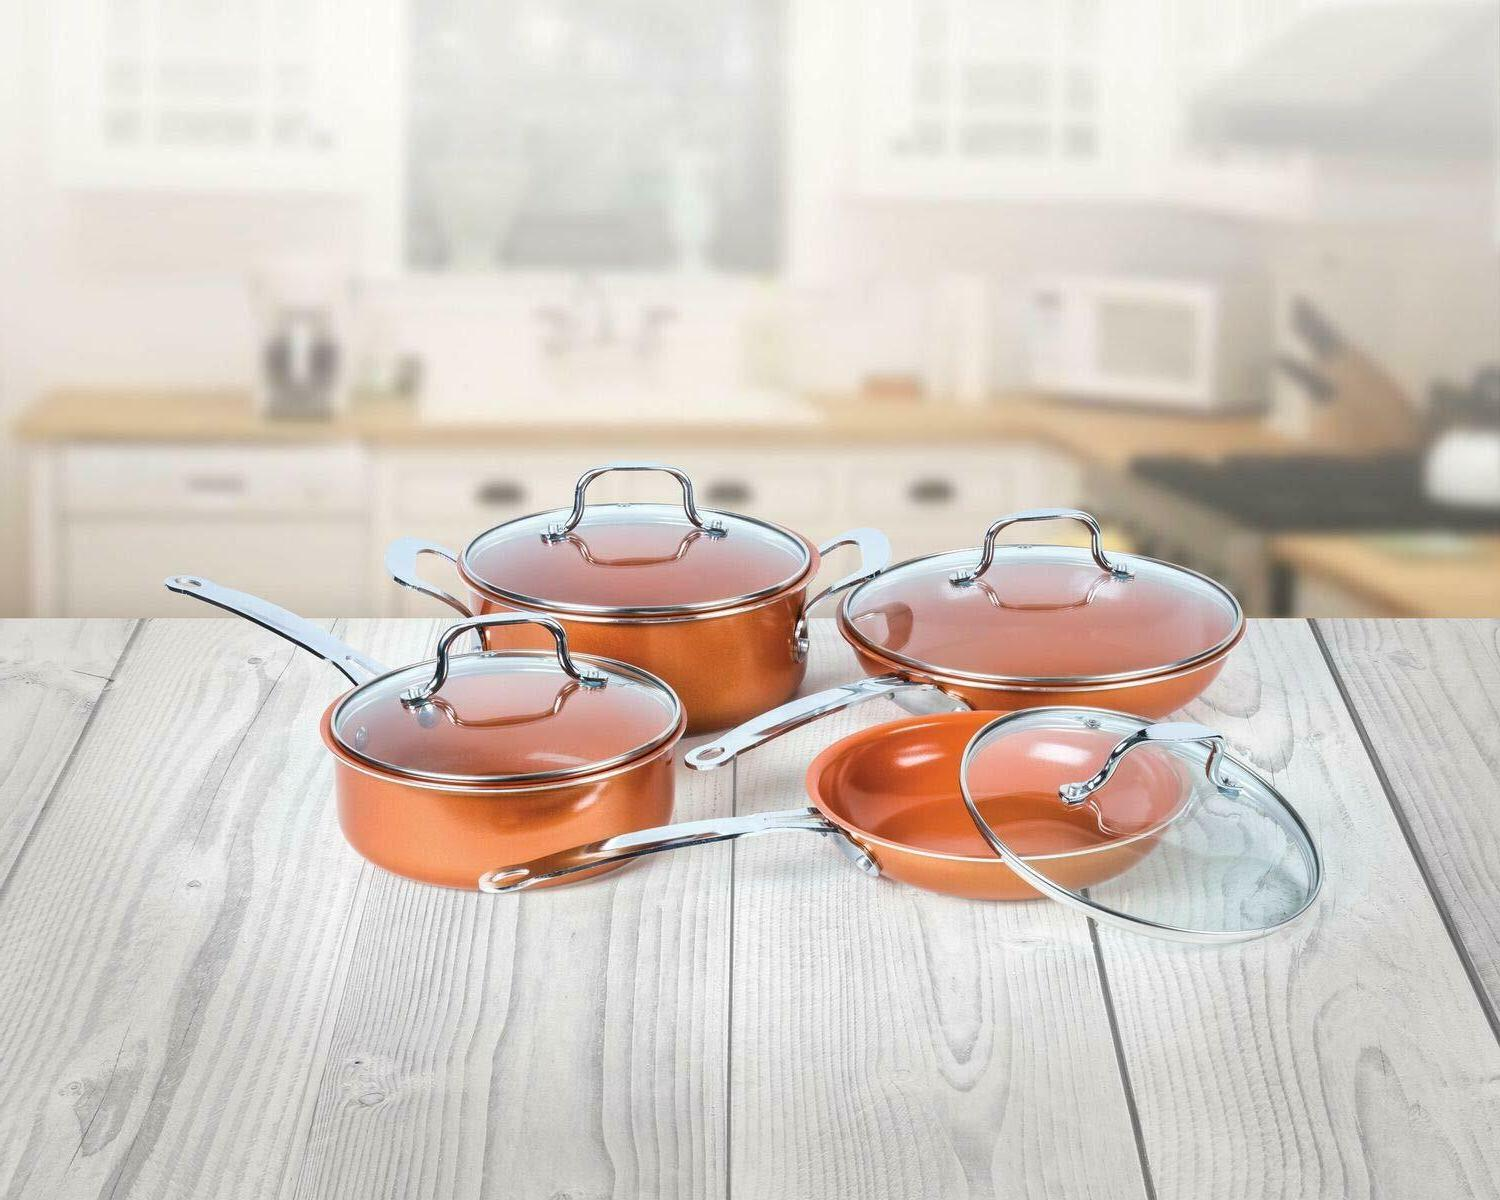 8-Piece Copper Induction Nonstick Coating Alum/Stainless Cookware Set